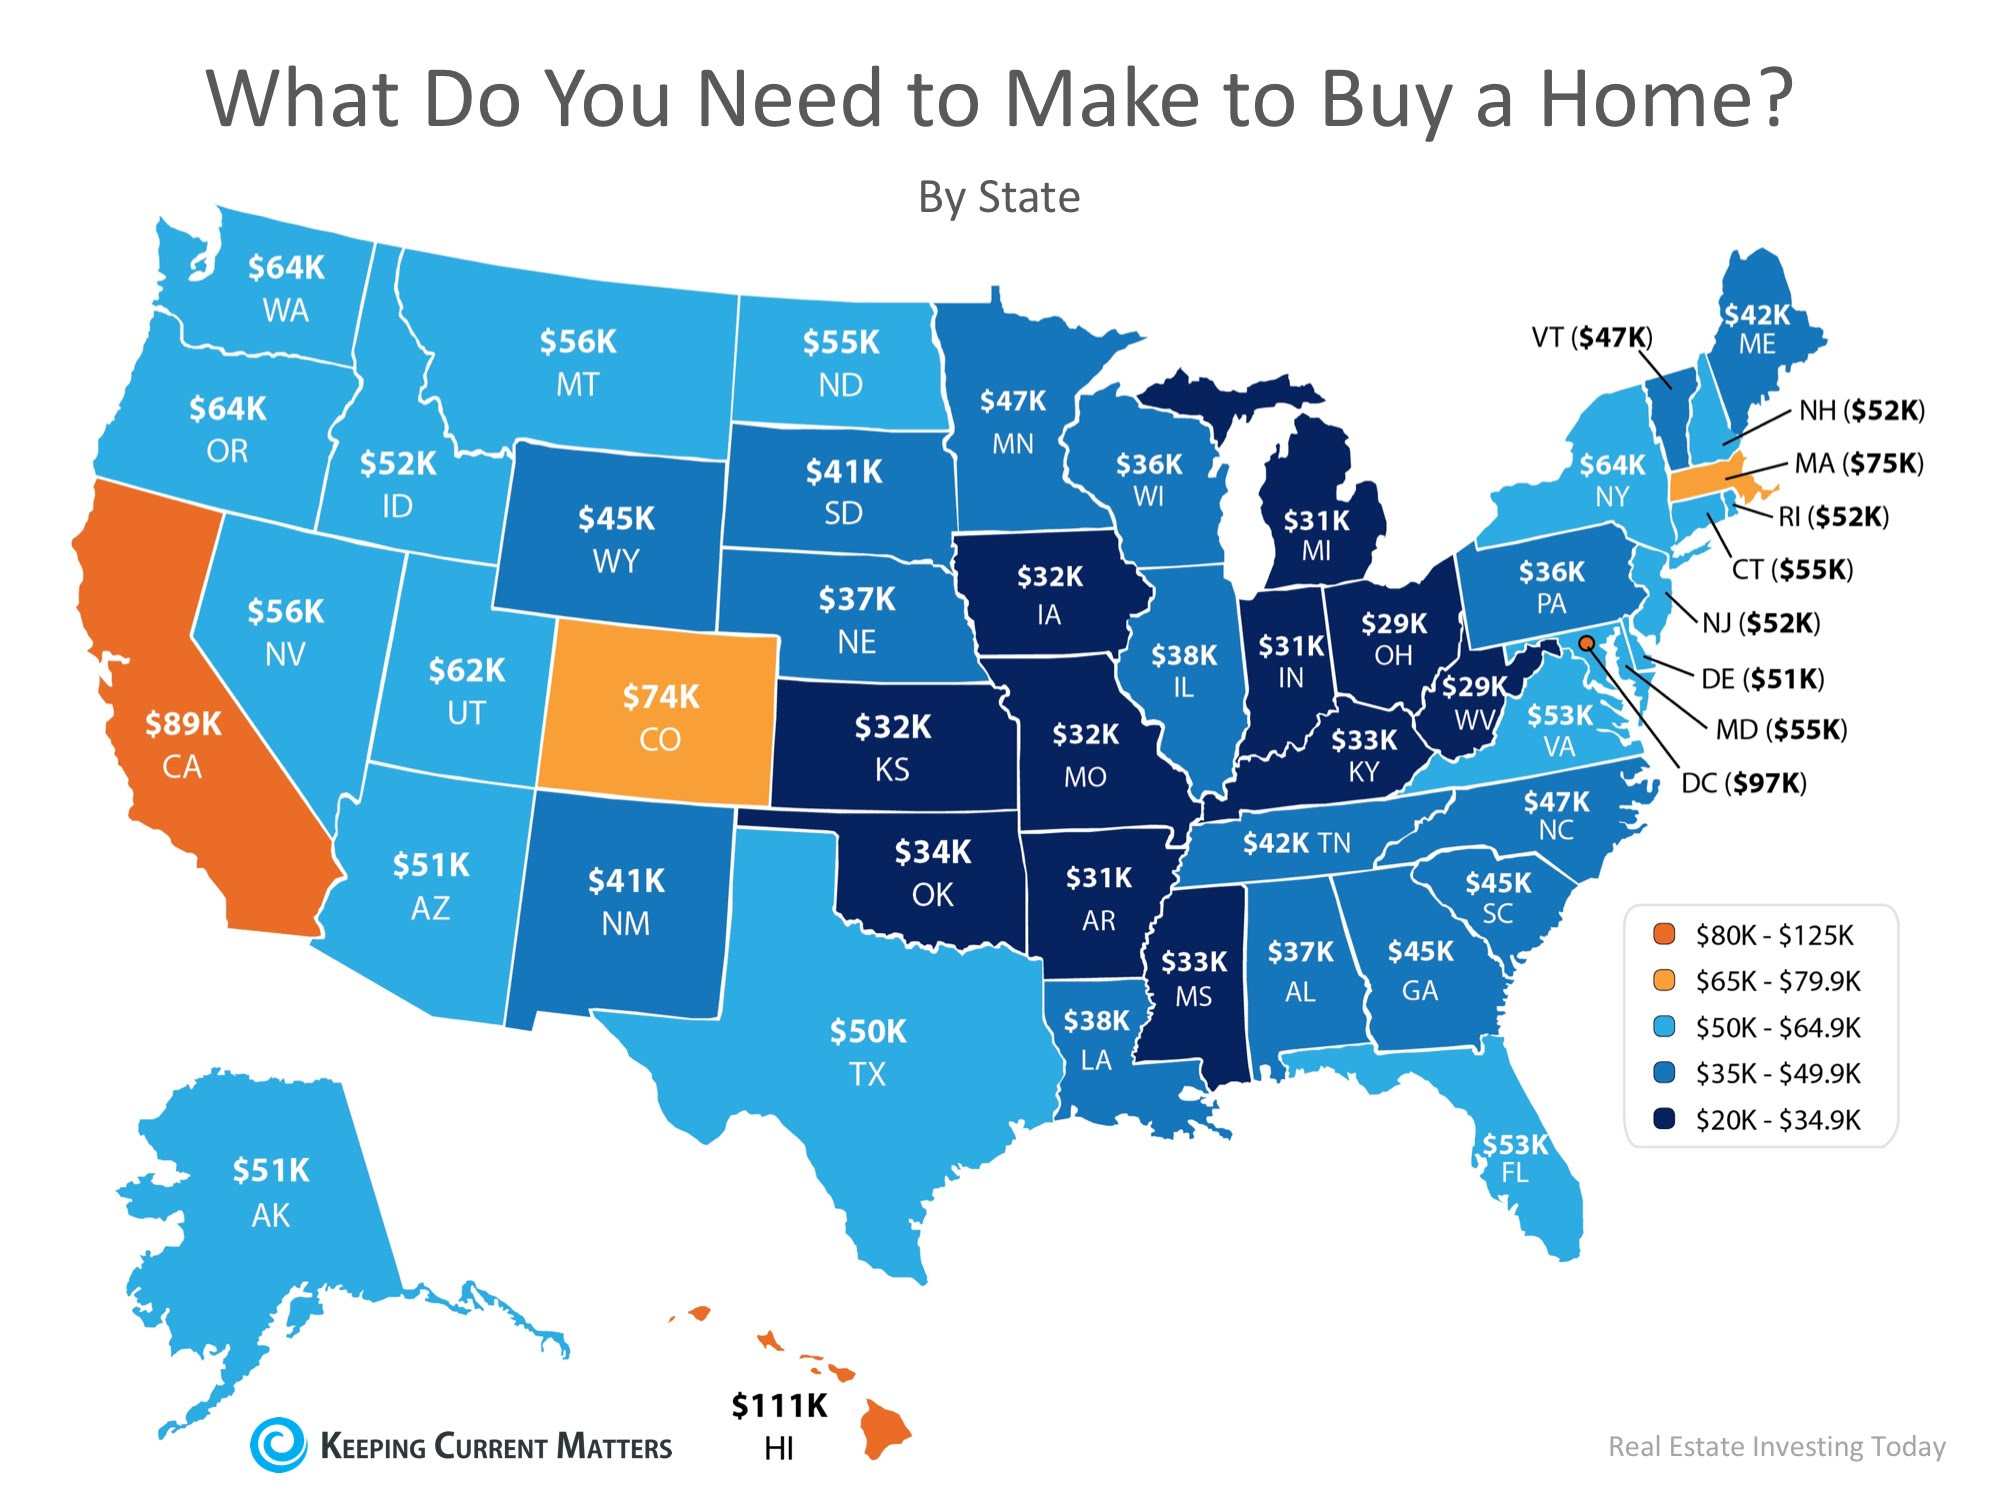 How Much Do You Need to Make to Buy a Home in Your State? | Keeping Current Matters